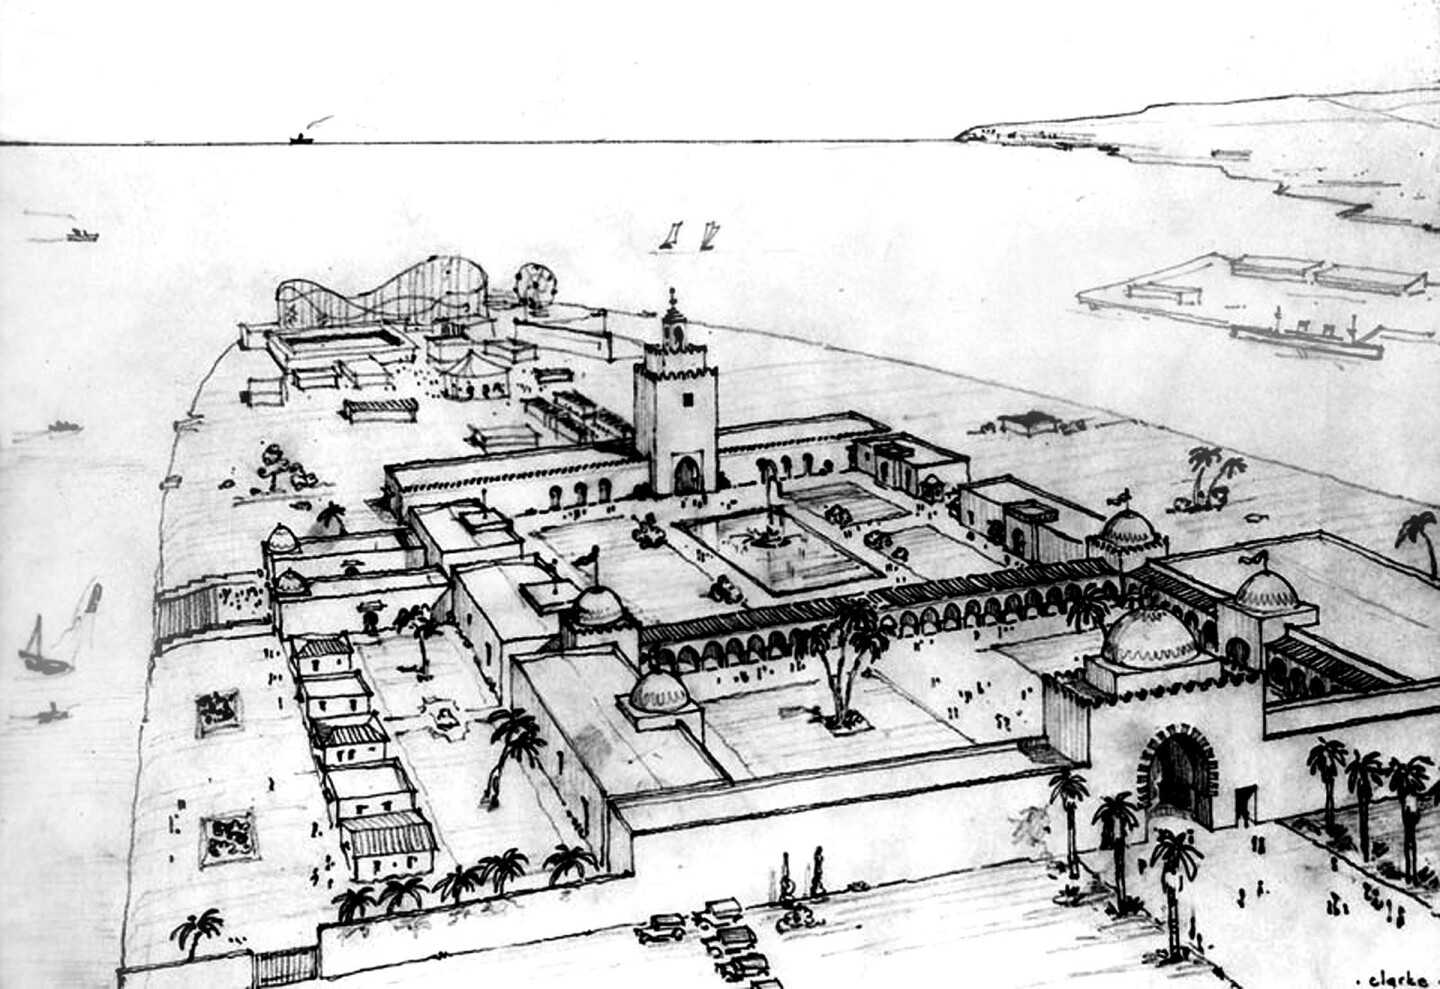 Plan. This sketch shows the exposition's domed entry gate, its two central courtyards, and the long arcade between them. Photograph courtesy of Security Pacific National Bank Collection, Los Angeles Public Library